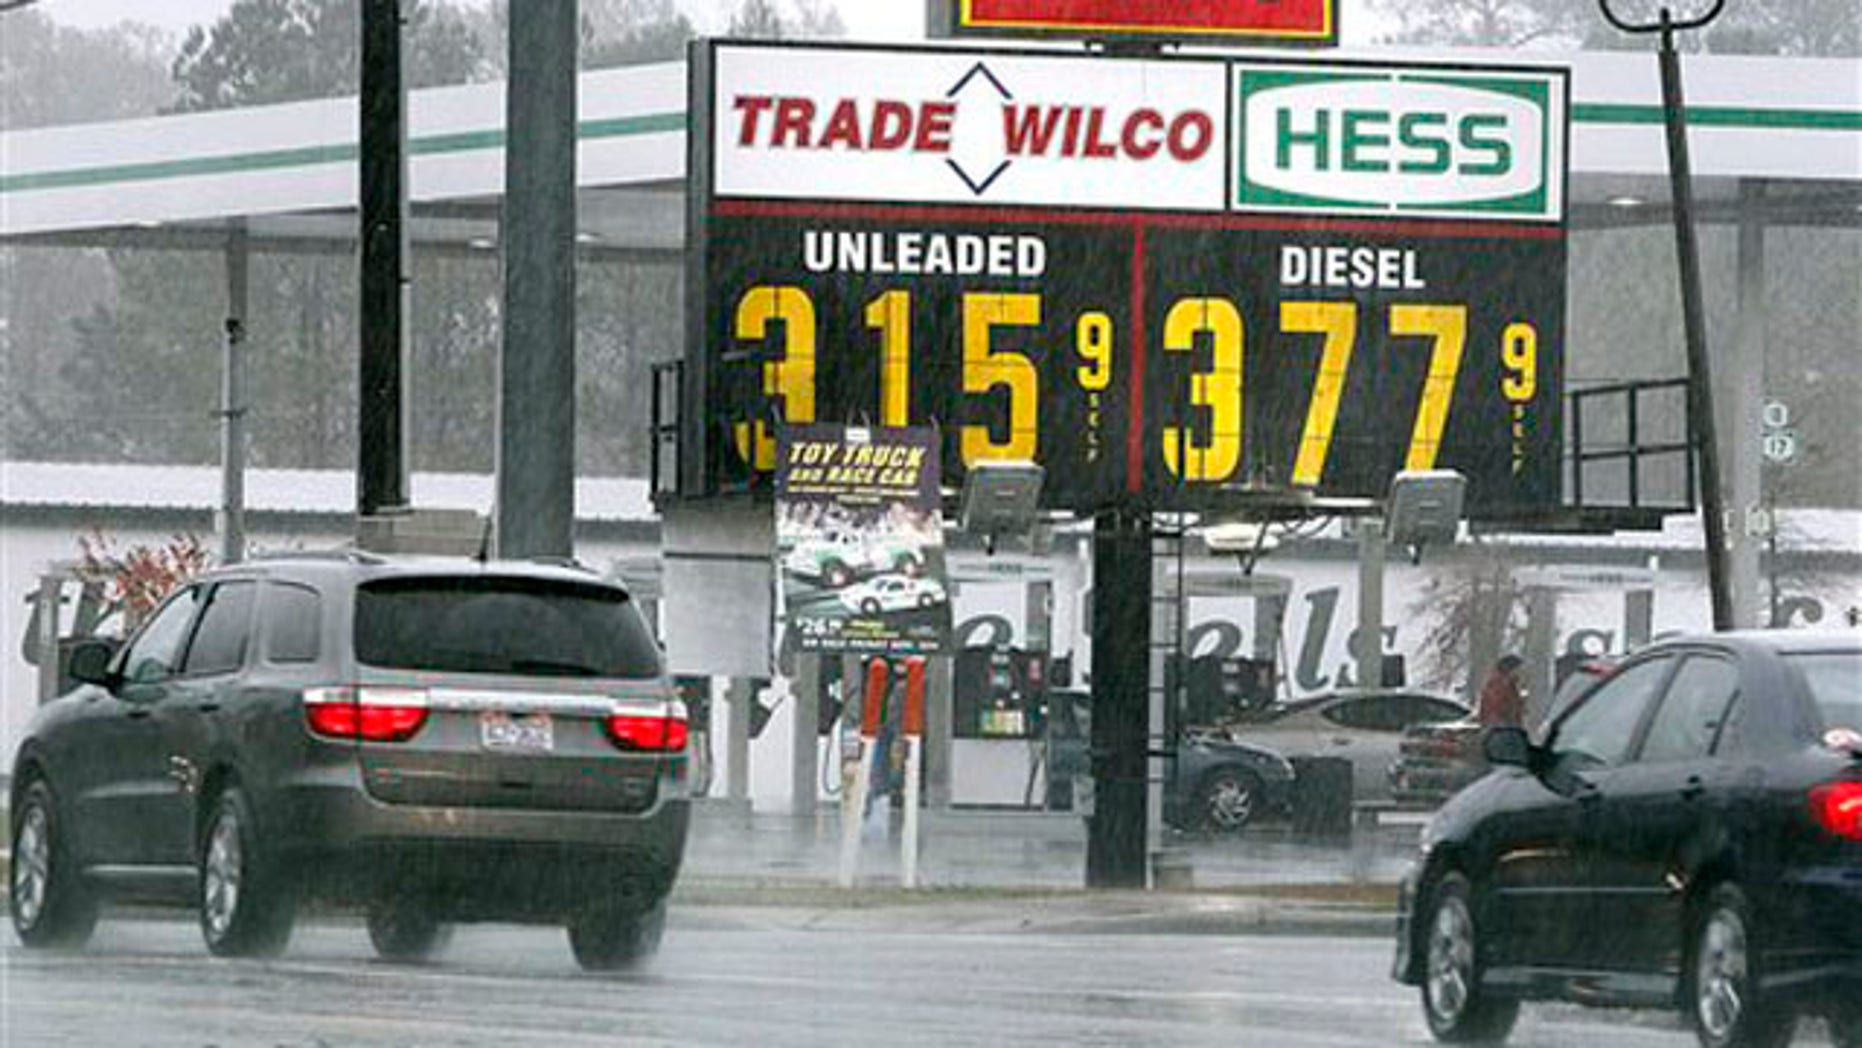 Dec. 27, 2011: Shown here is a gas station in Swansboro, N.C.